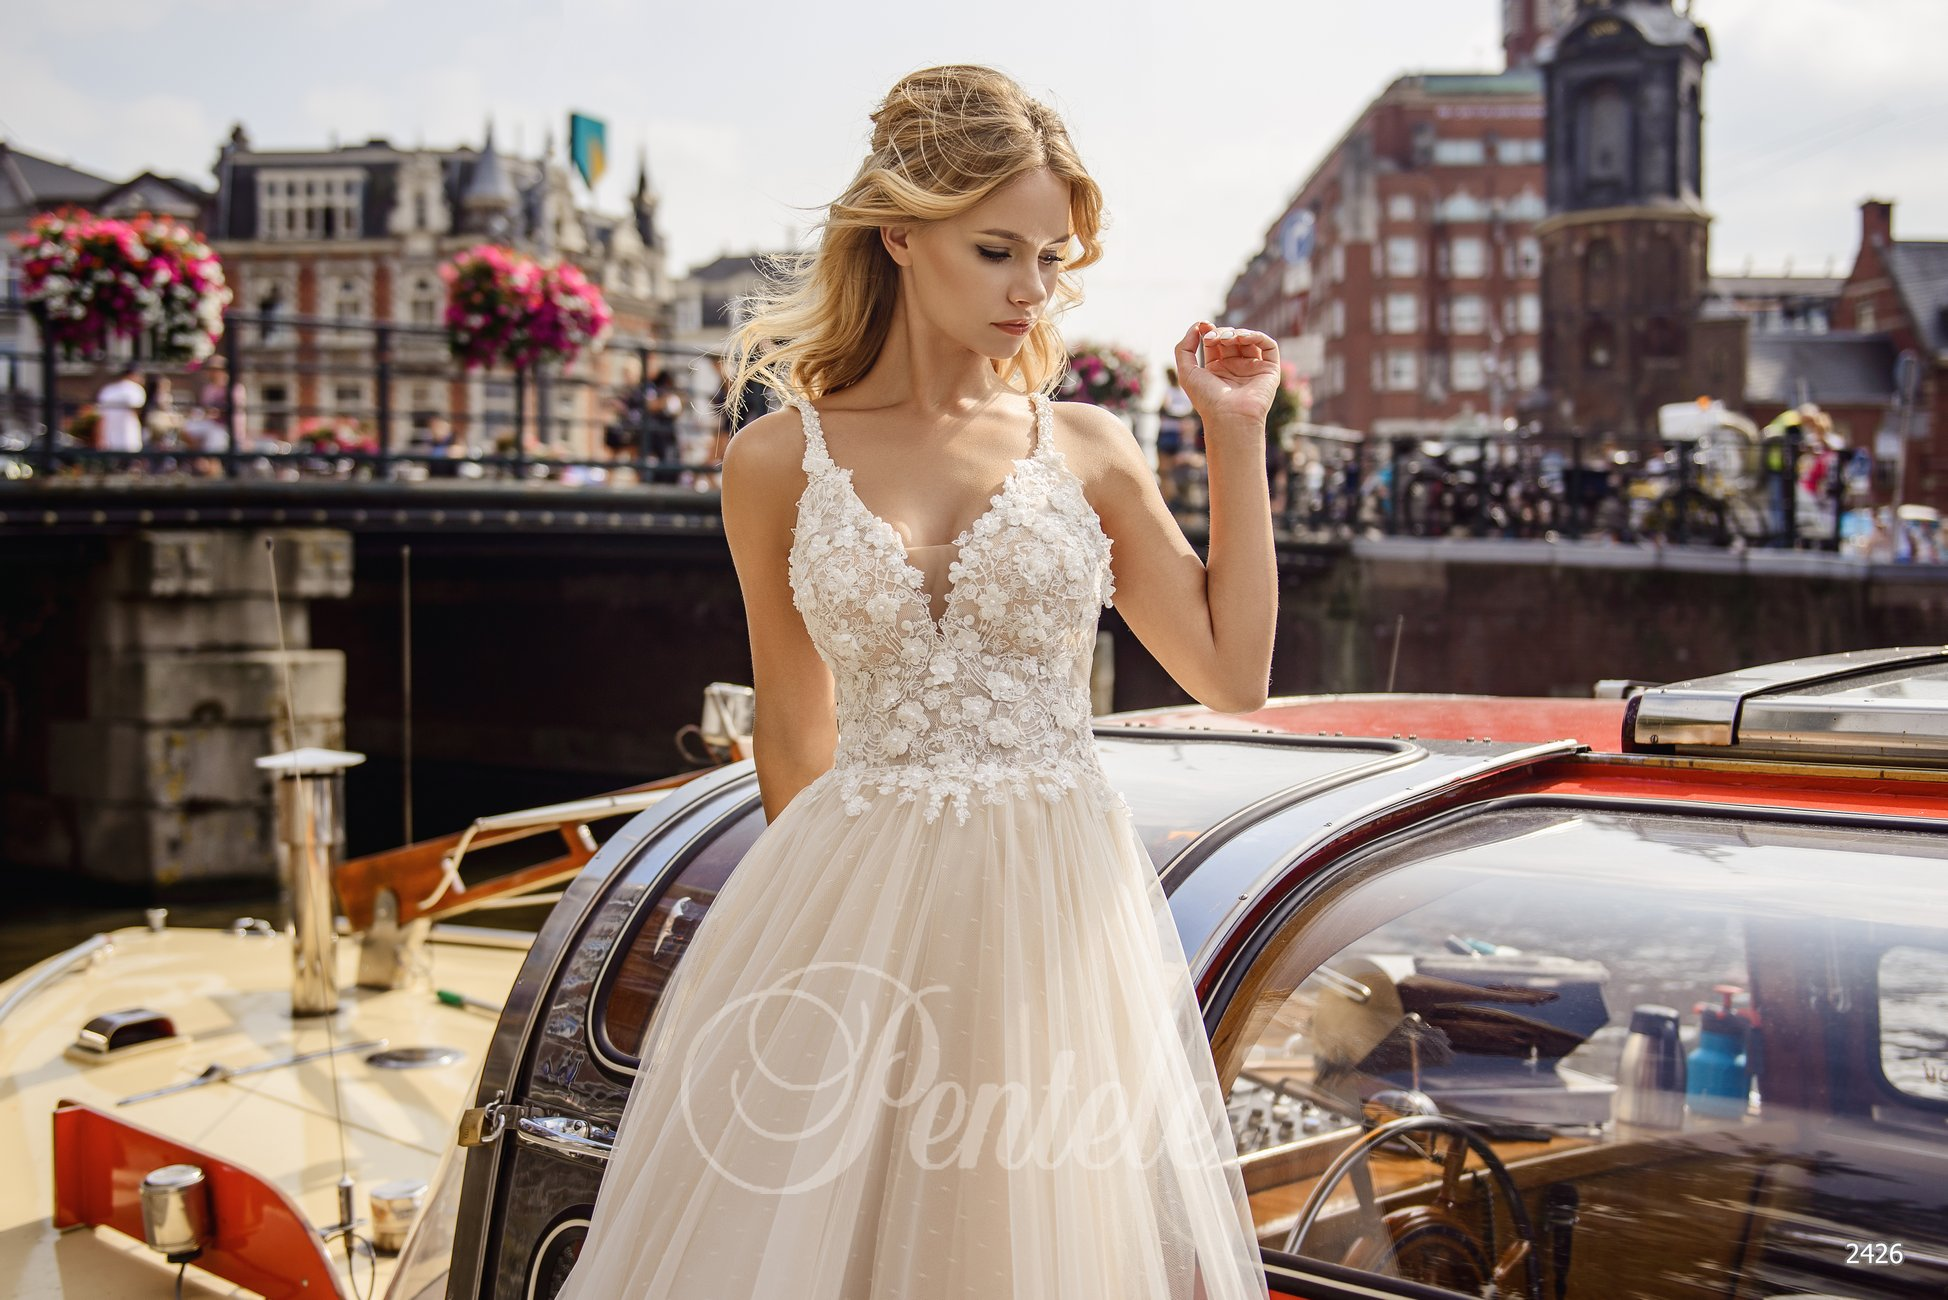 Wholesale Wedding Gowns In Usa: Wedding Dresses Wholesale In Argentina By Pentelei